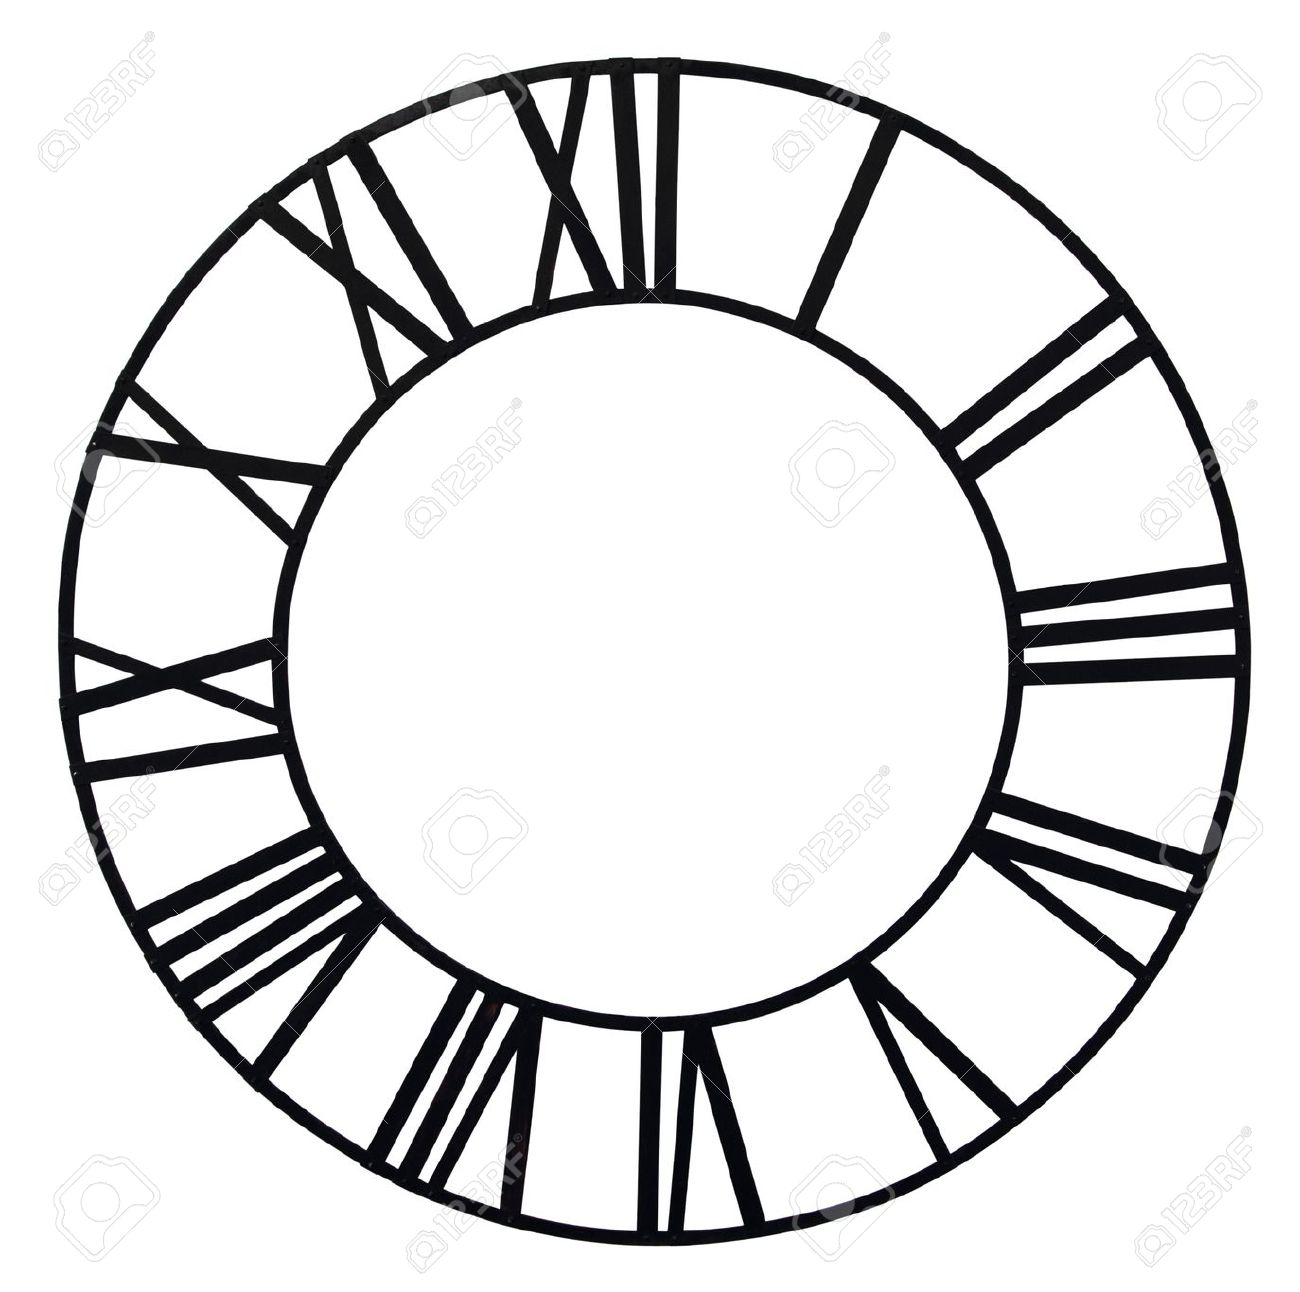 The Old Church Clock Dial Isolated On White Background Stock Photo.